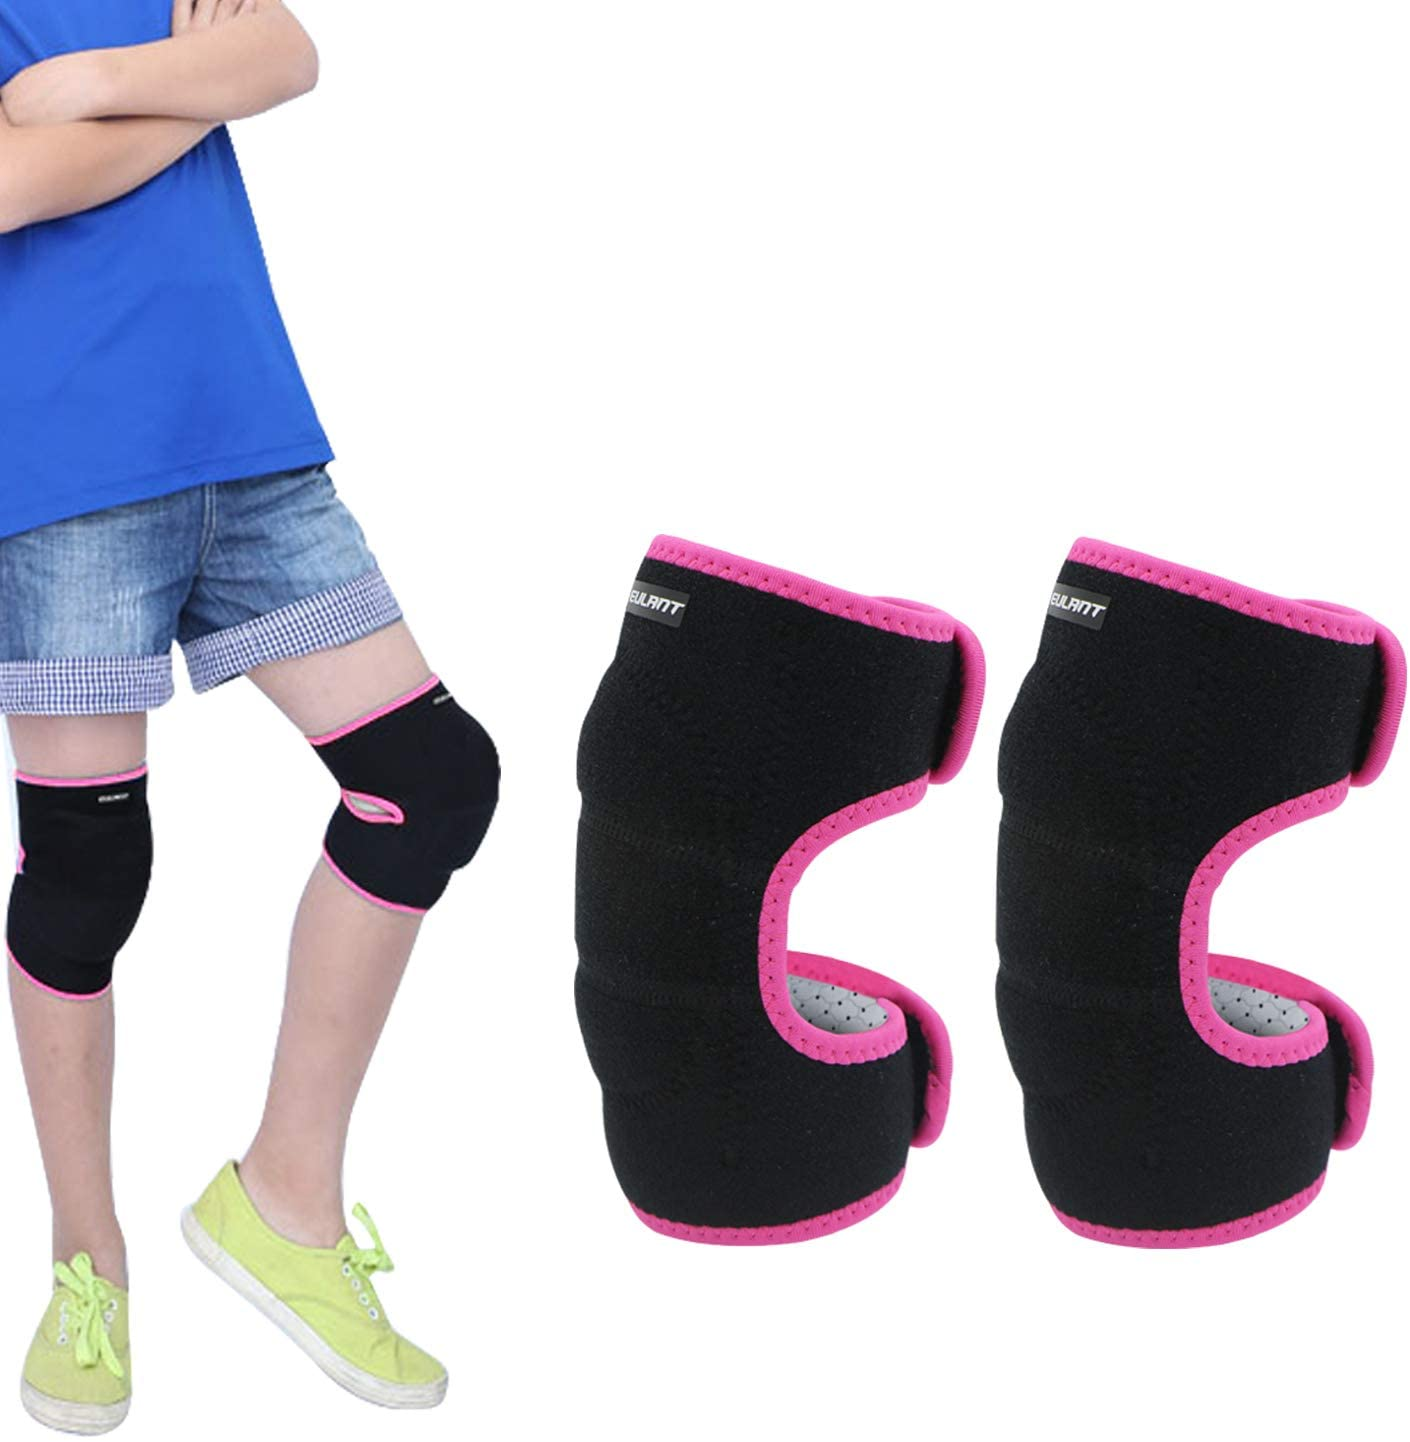 Sborter Protective Knee Pads for Children, Soft Adjustable Kids Elbow Pads with Thick Sponge, Protect The Knee & Elbow, 1 Pair